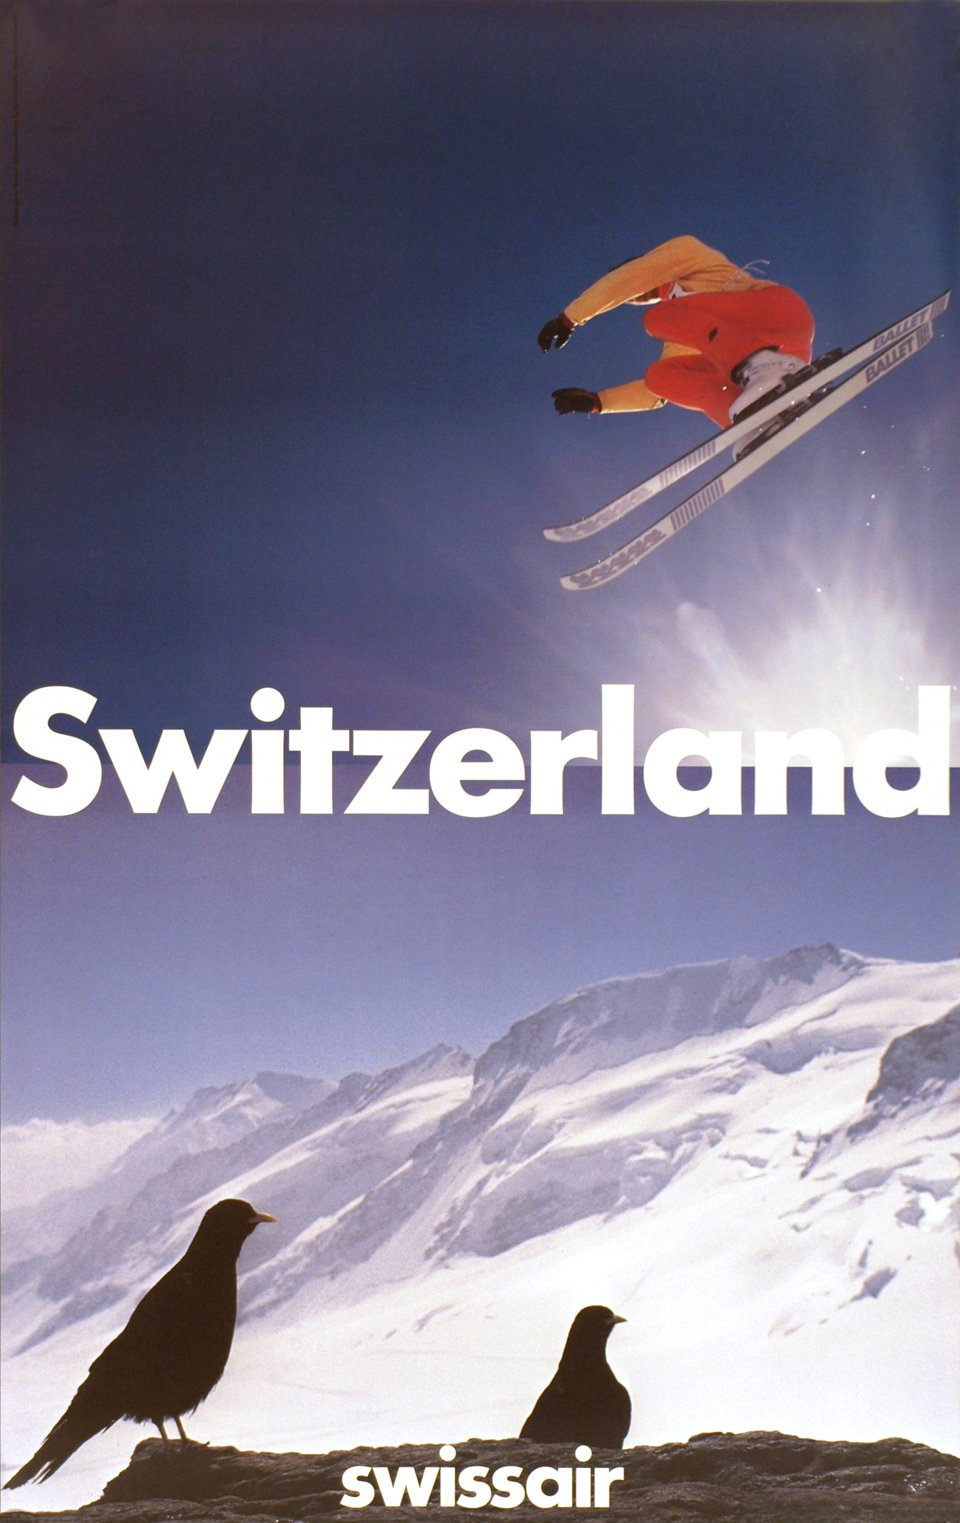 Switzerland, Swissair – Affiche ancienne – Paul BRUHWILER – 1985